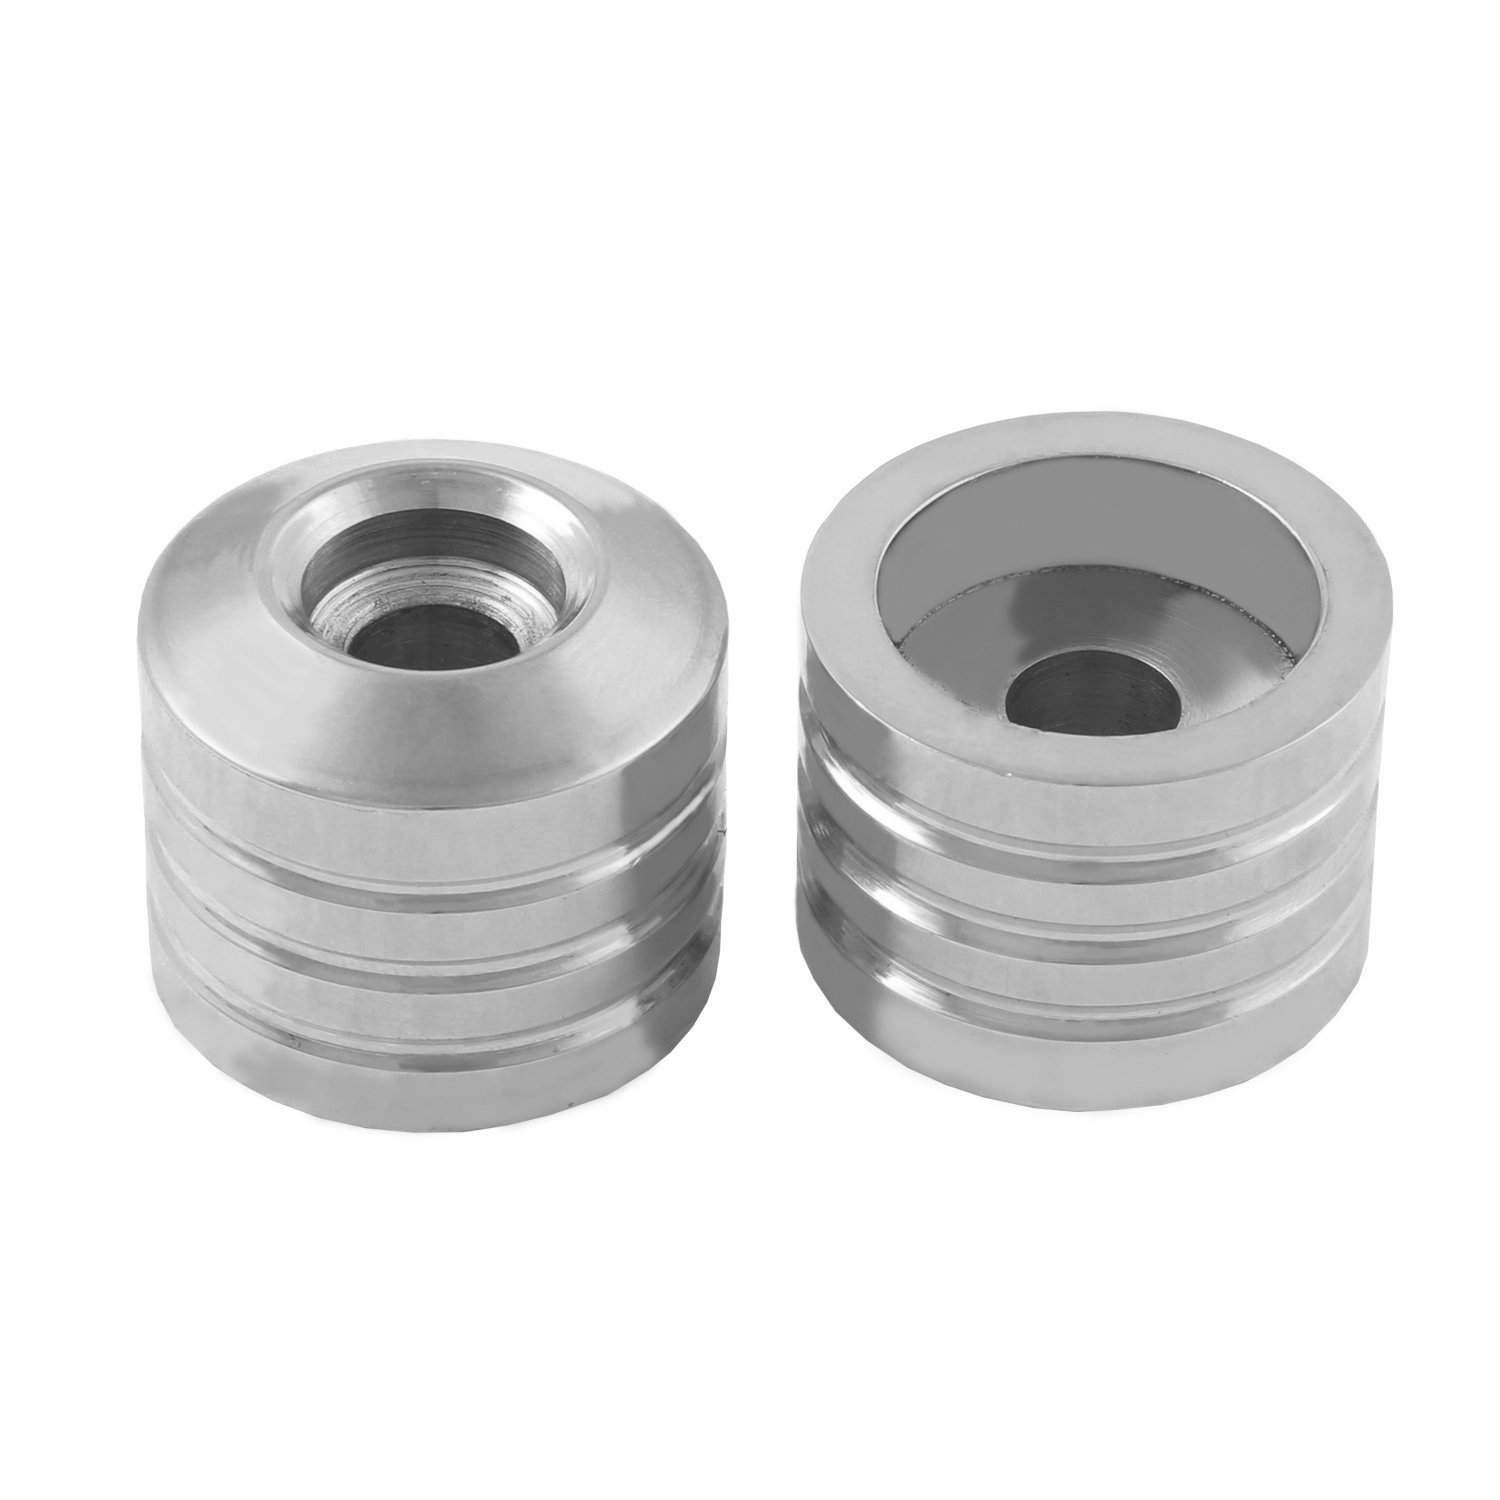 MotorCycle HandleBar End Weights for Royal Enfield All Models and All Other Bikes (Set of 2,Chrome)